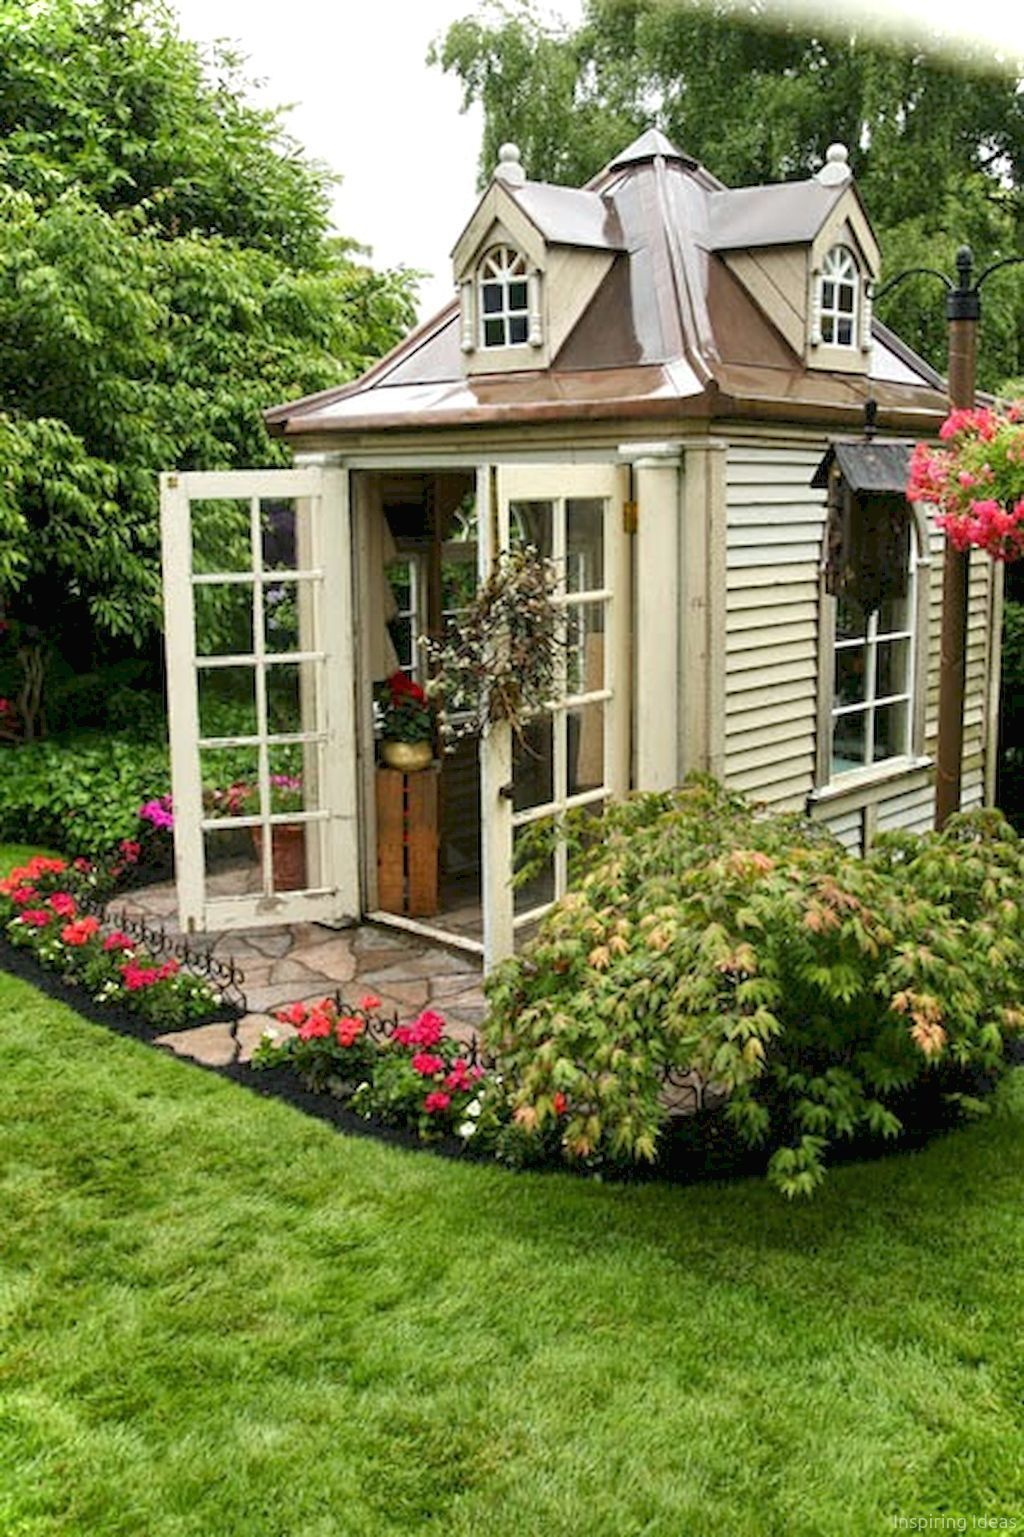 50 Clever Garden Shed Storage Ideas | Organizations, Gardens and Patios